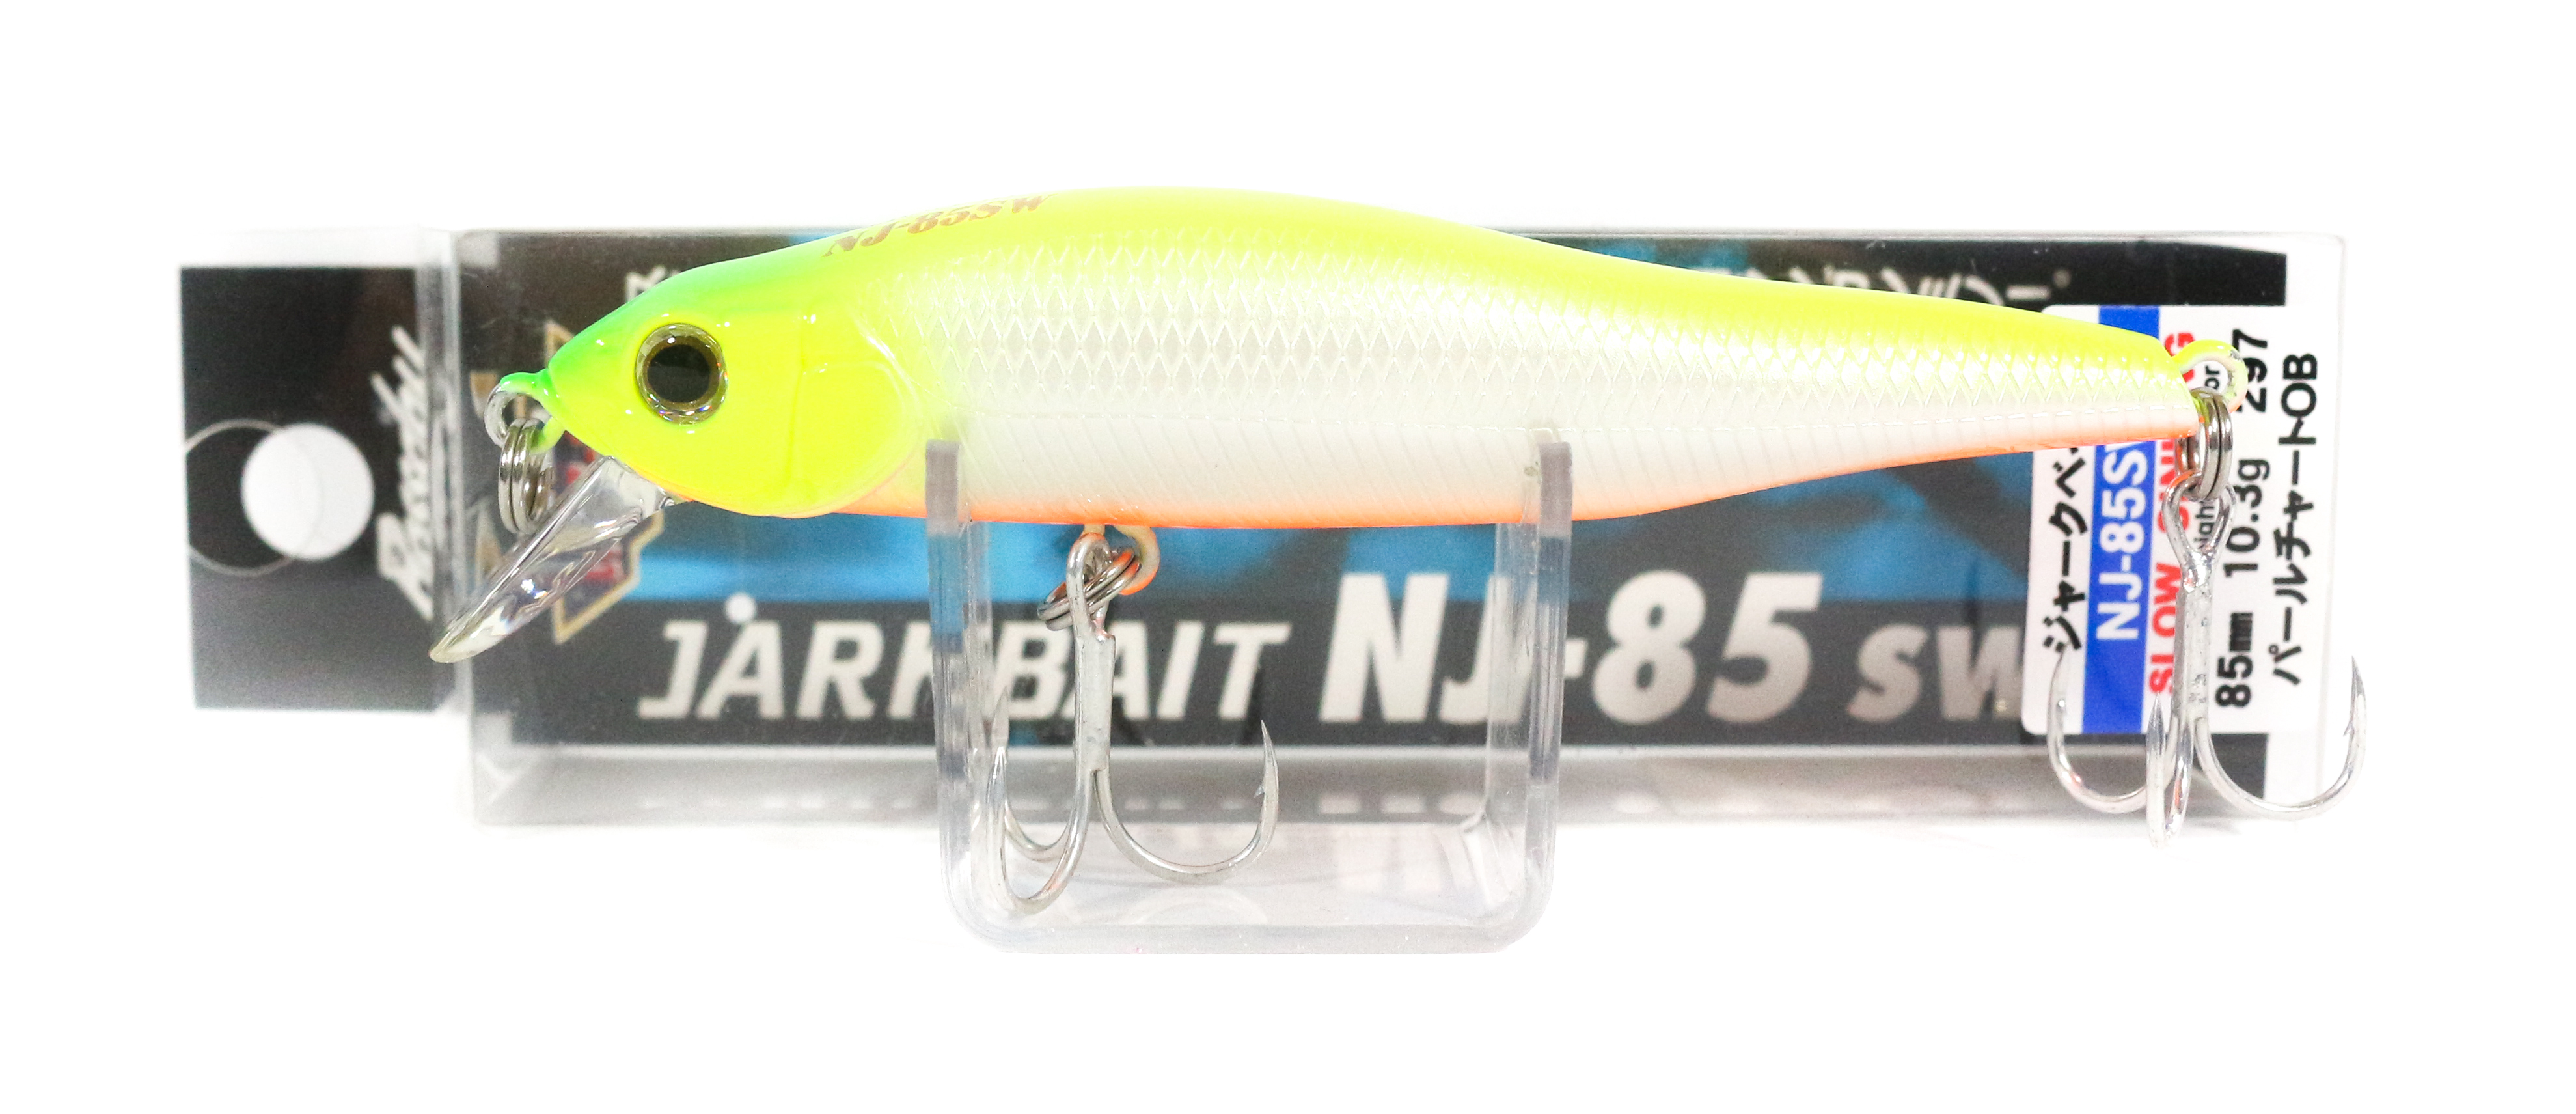 Bassday Jerkbait NJ 85 SW Sinking Minnow Lure 297 (3400)